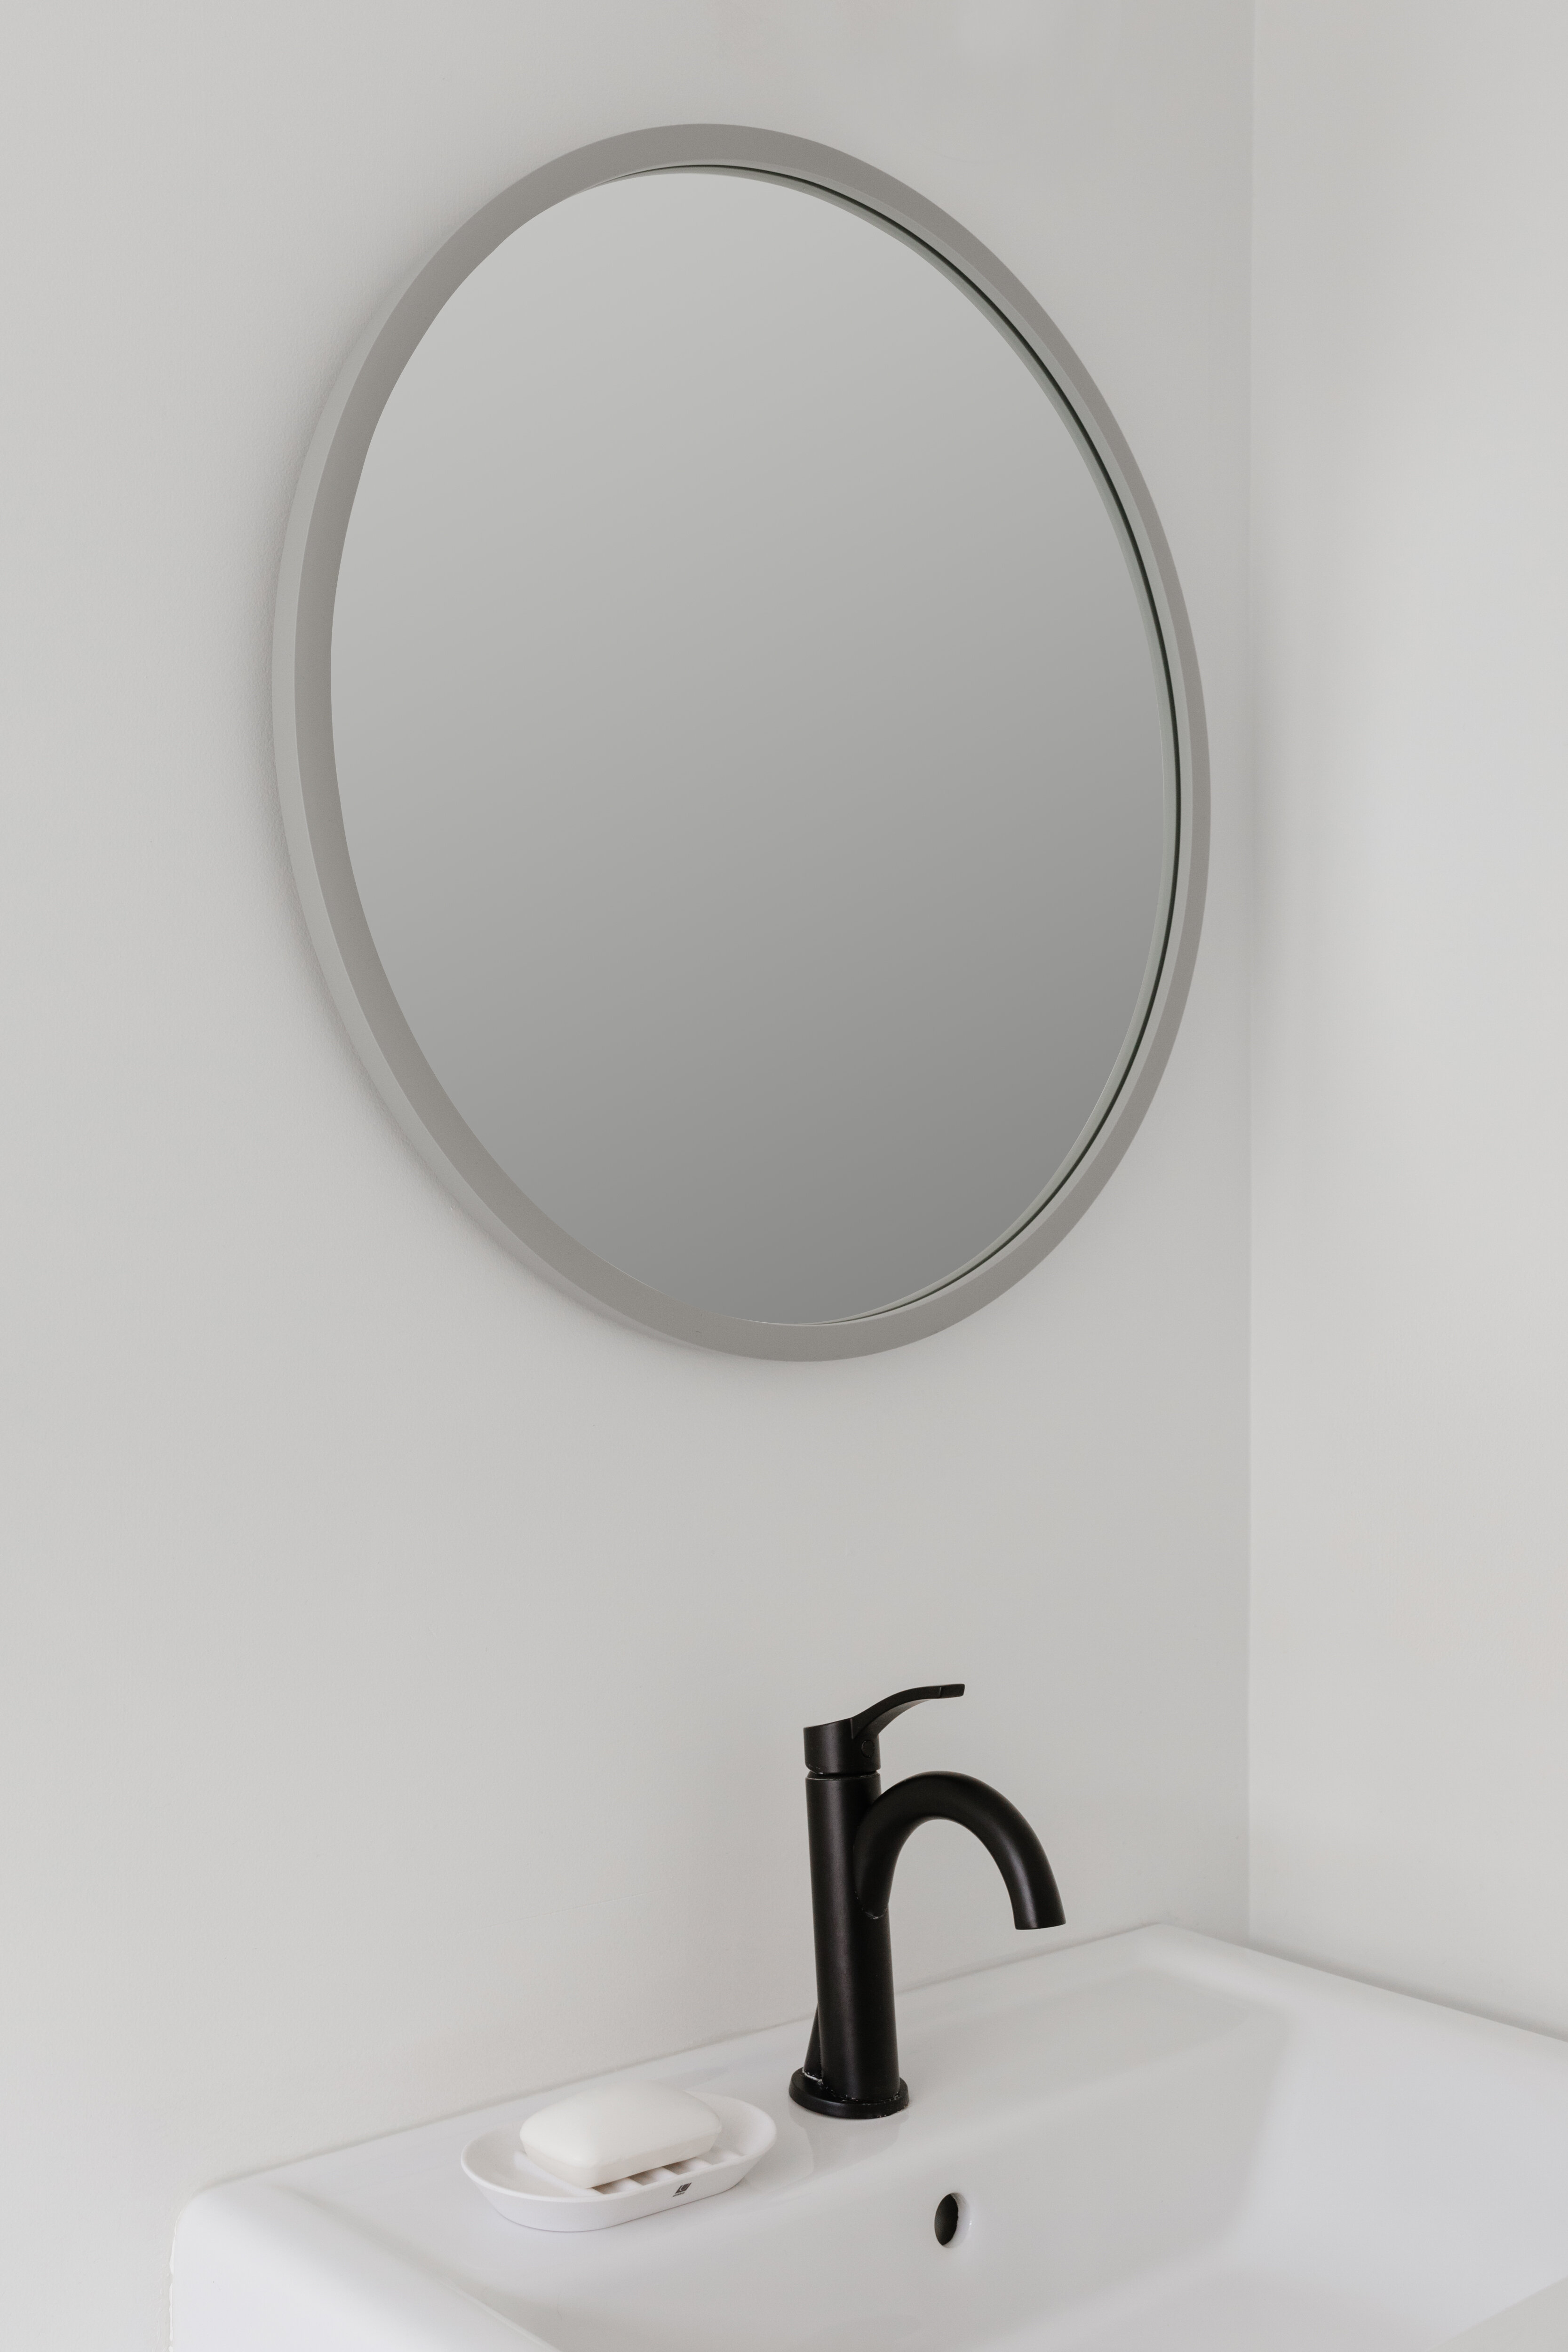 Umbra Hub Modern And Contemporary Accent Mirror Pertaining To Hub Modern And Contemporary Accent Mirrors (View 27 of 30)